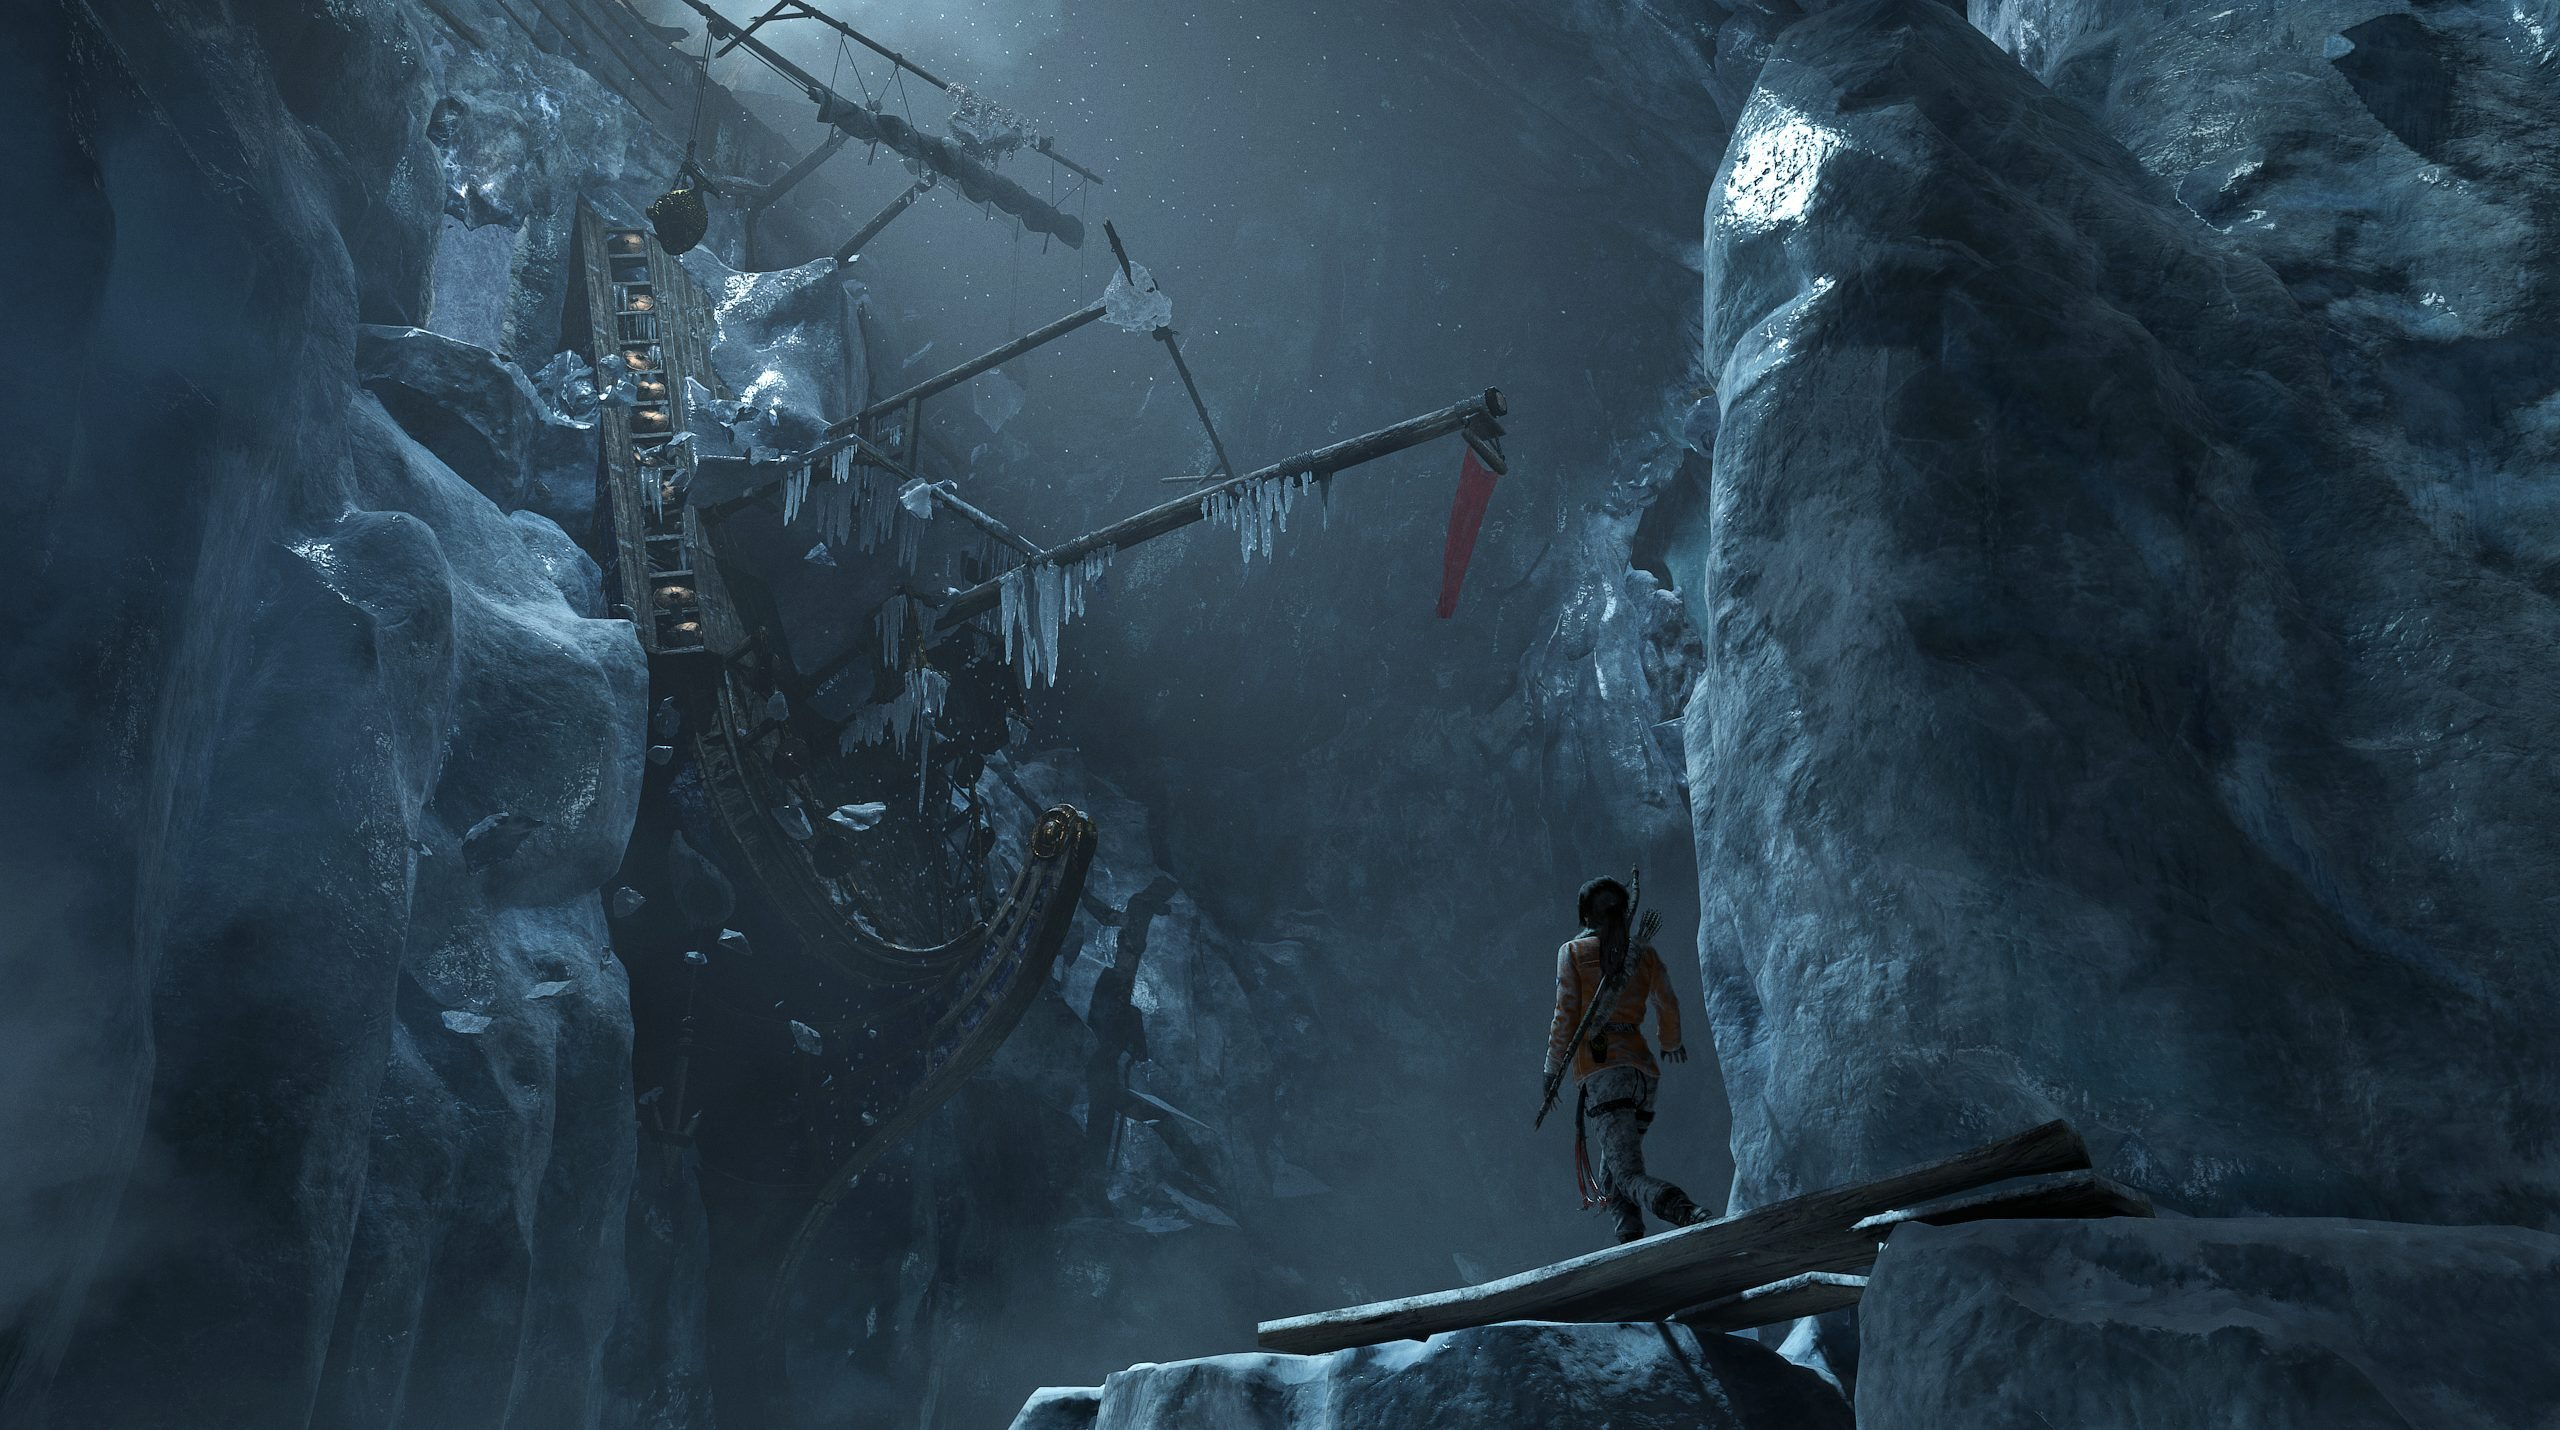 Rise of the Tomb Raider: 20 Year Celebration PlayStation 4 Pro Tech Video Released